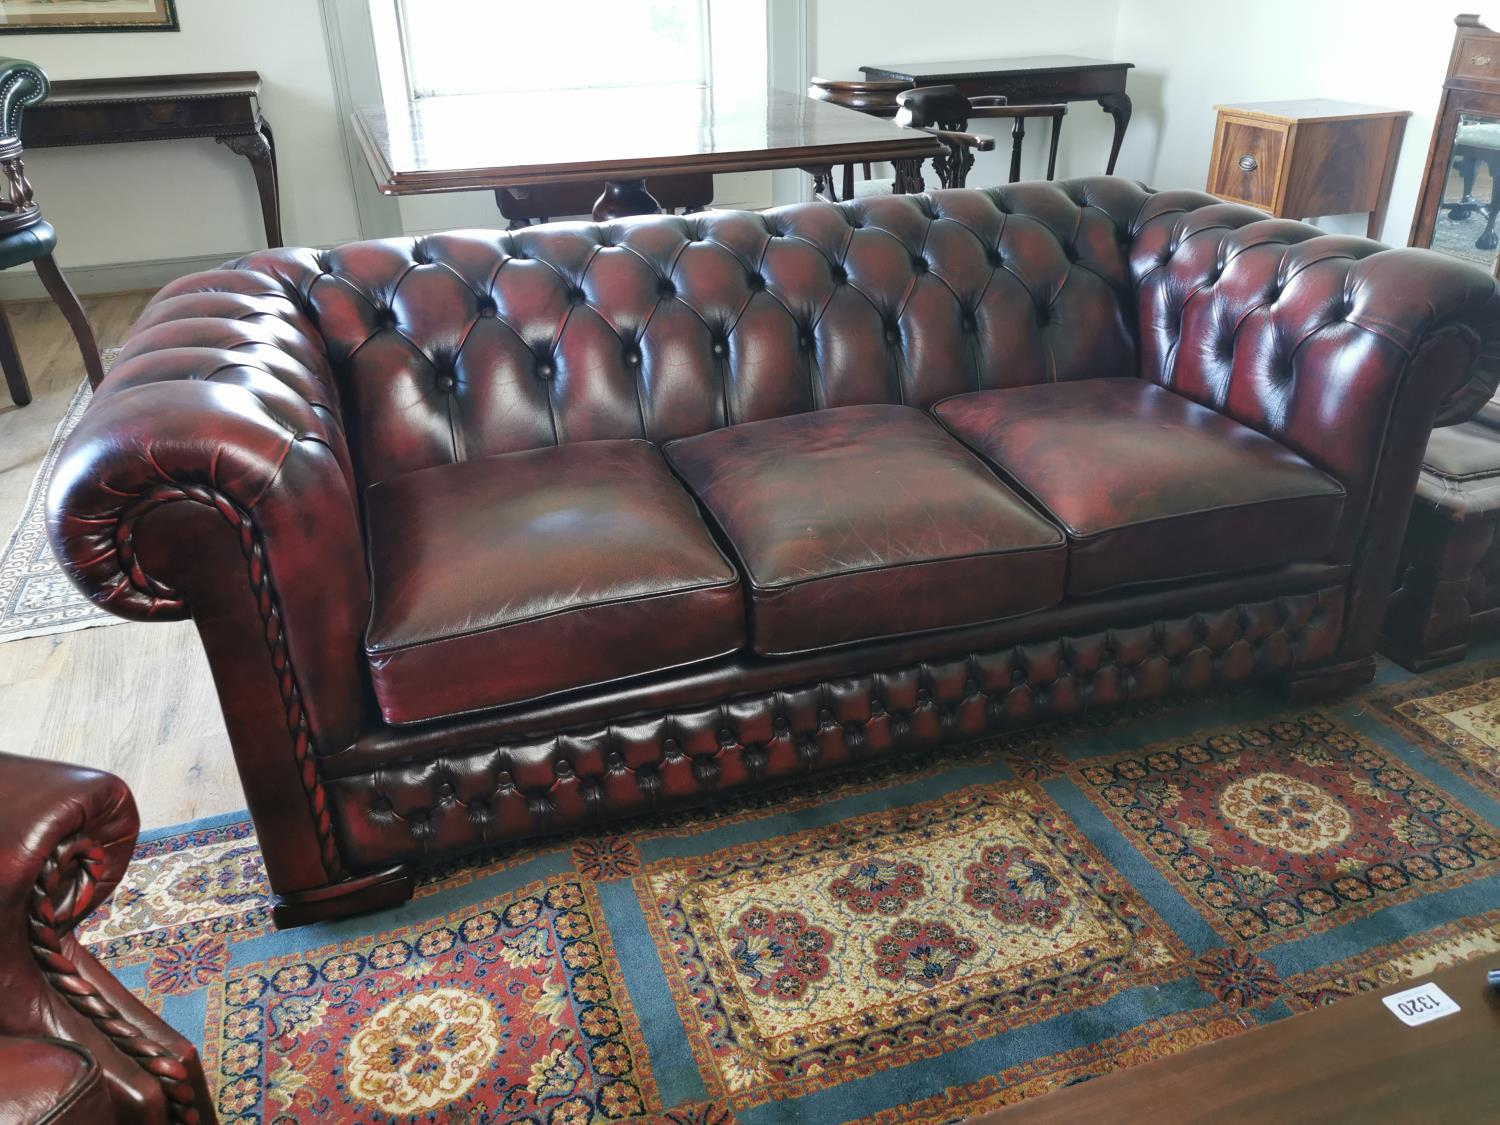 Ox blood leather Chesterfield sofa.